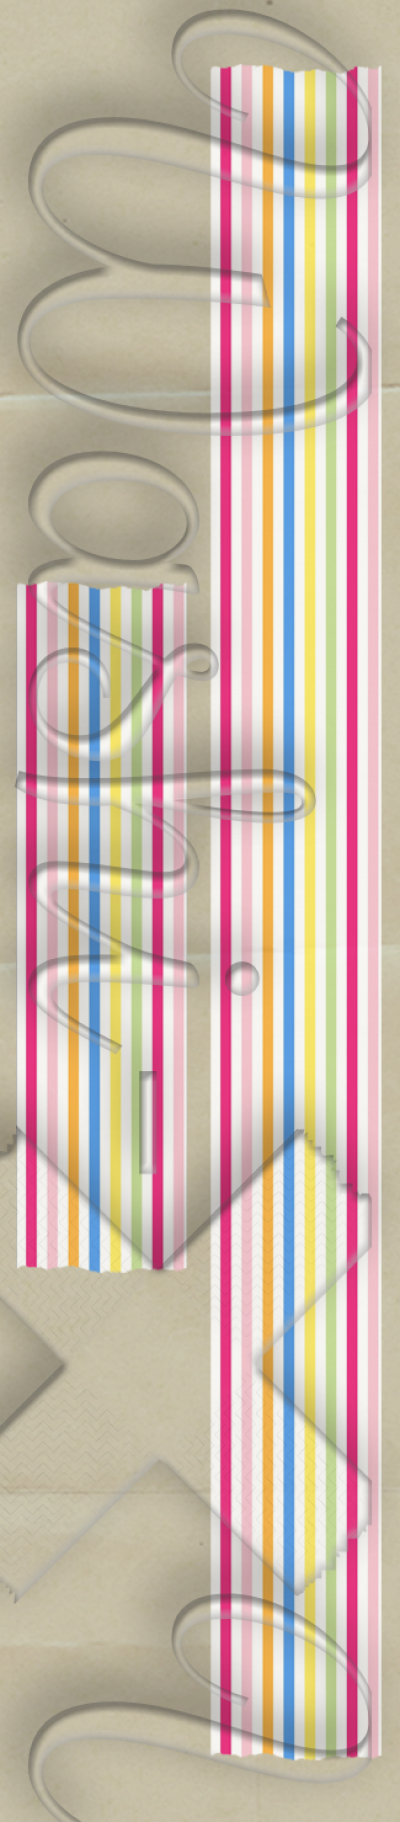 Washi-X Washi Tape Lines patterned washi tape style 2